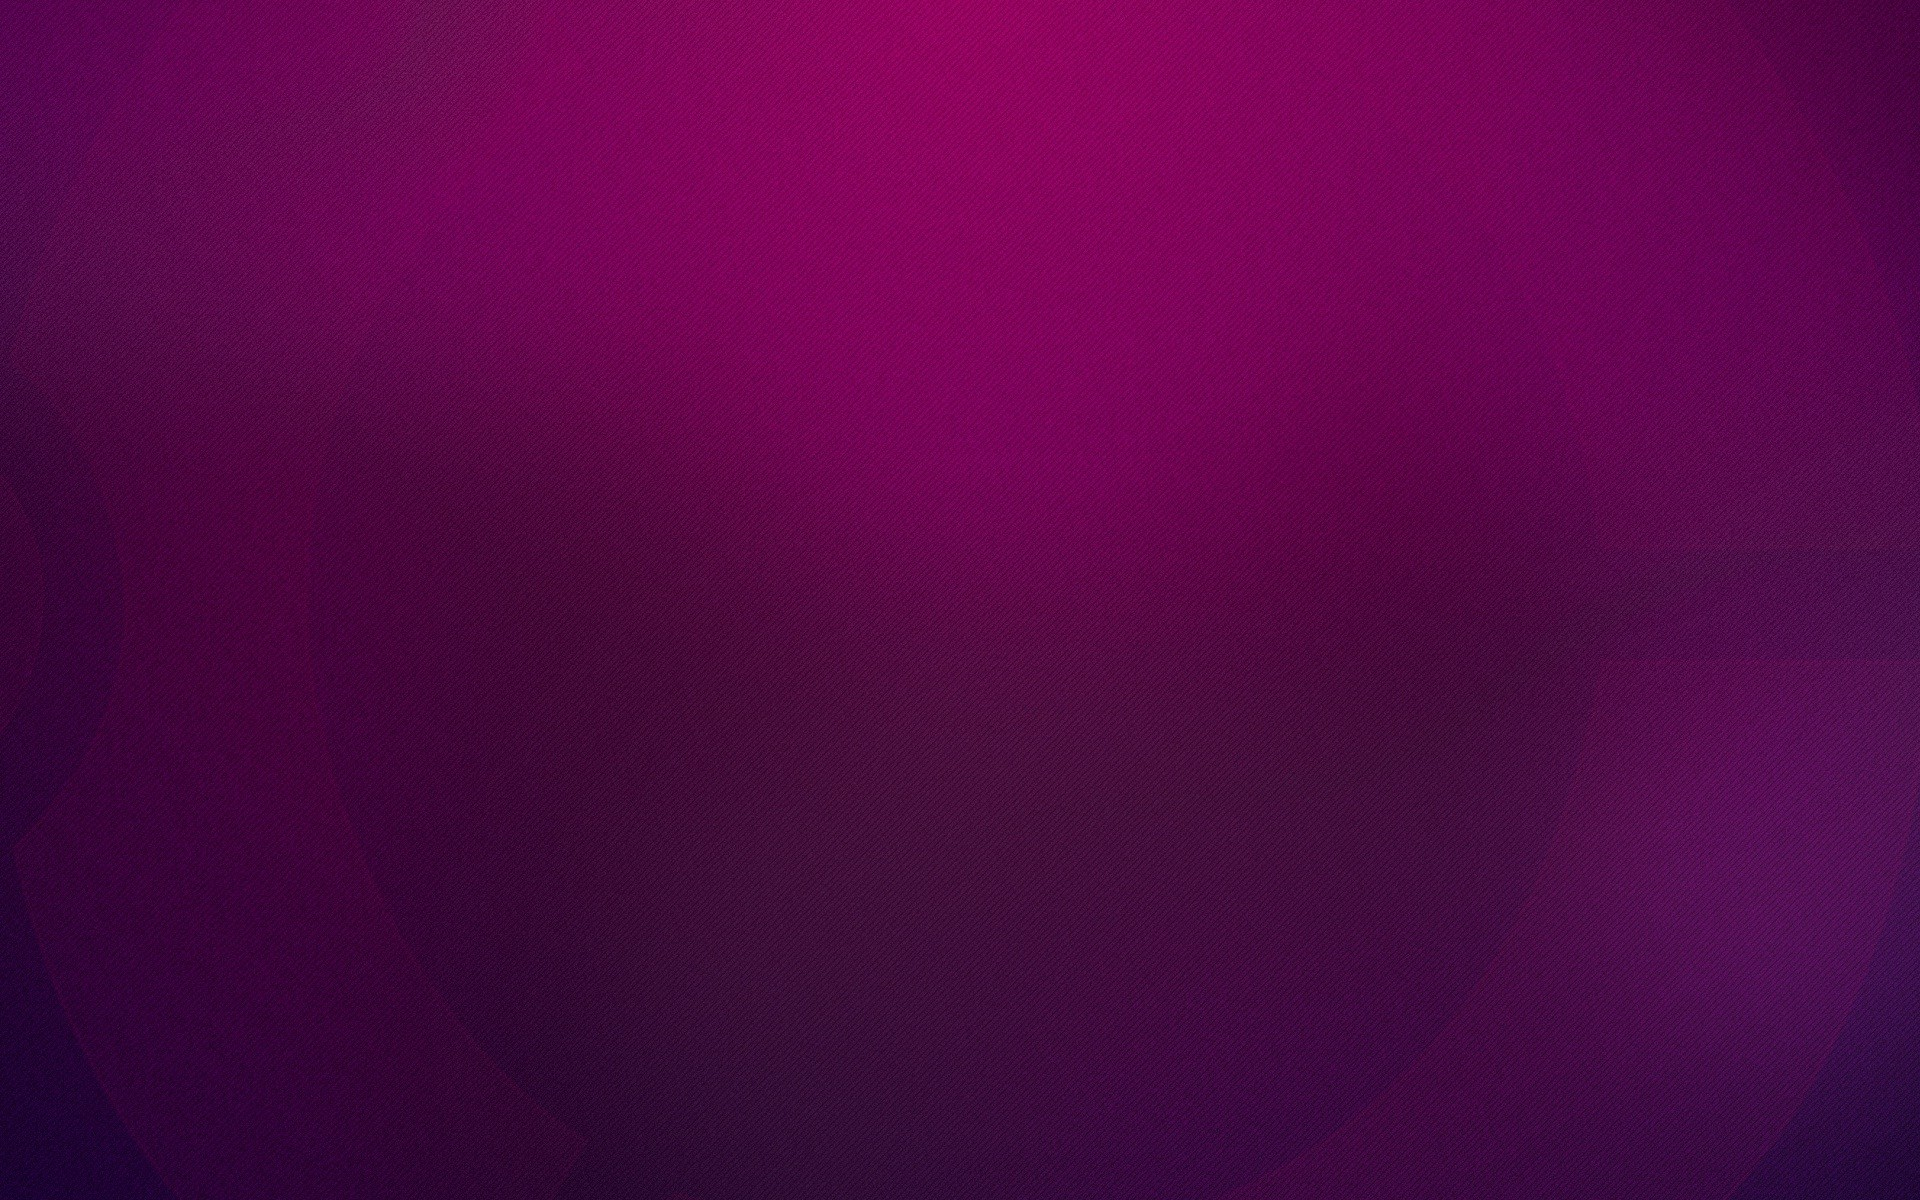 1920x1200 Dark purple and blue plain abstract wallpapers